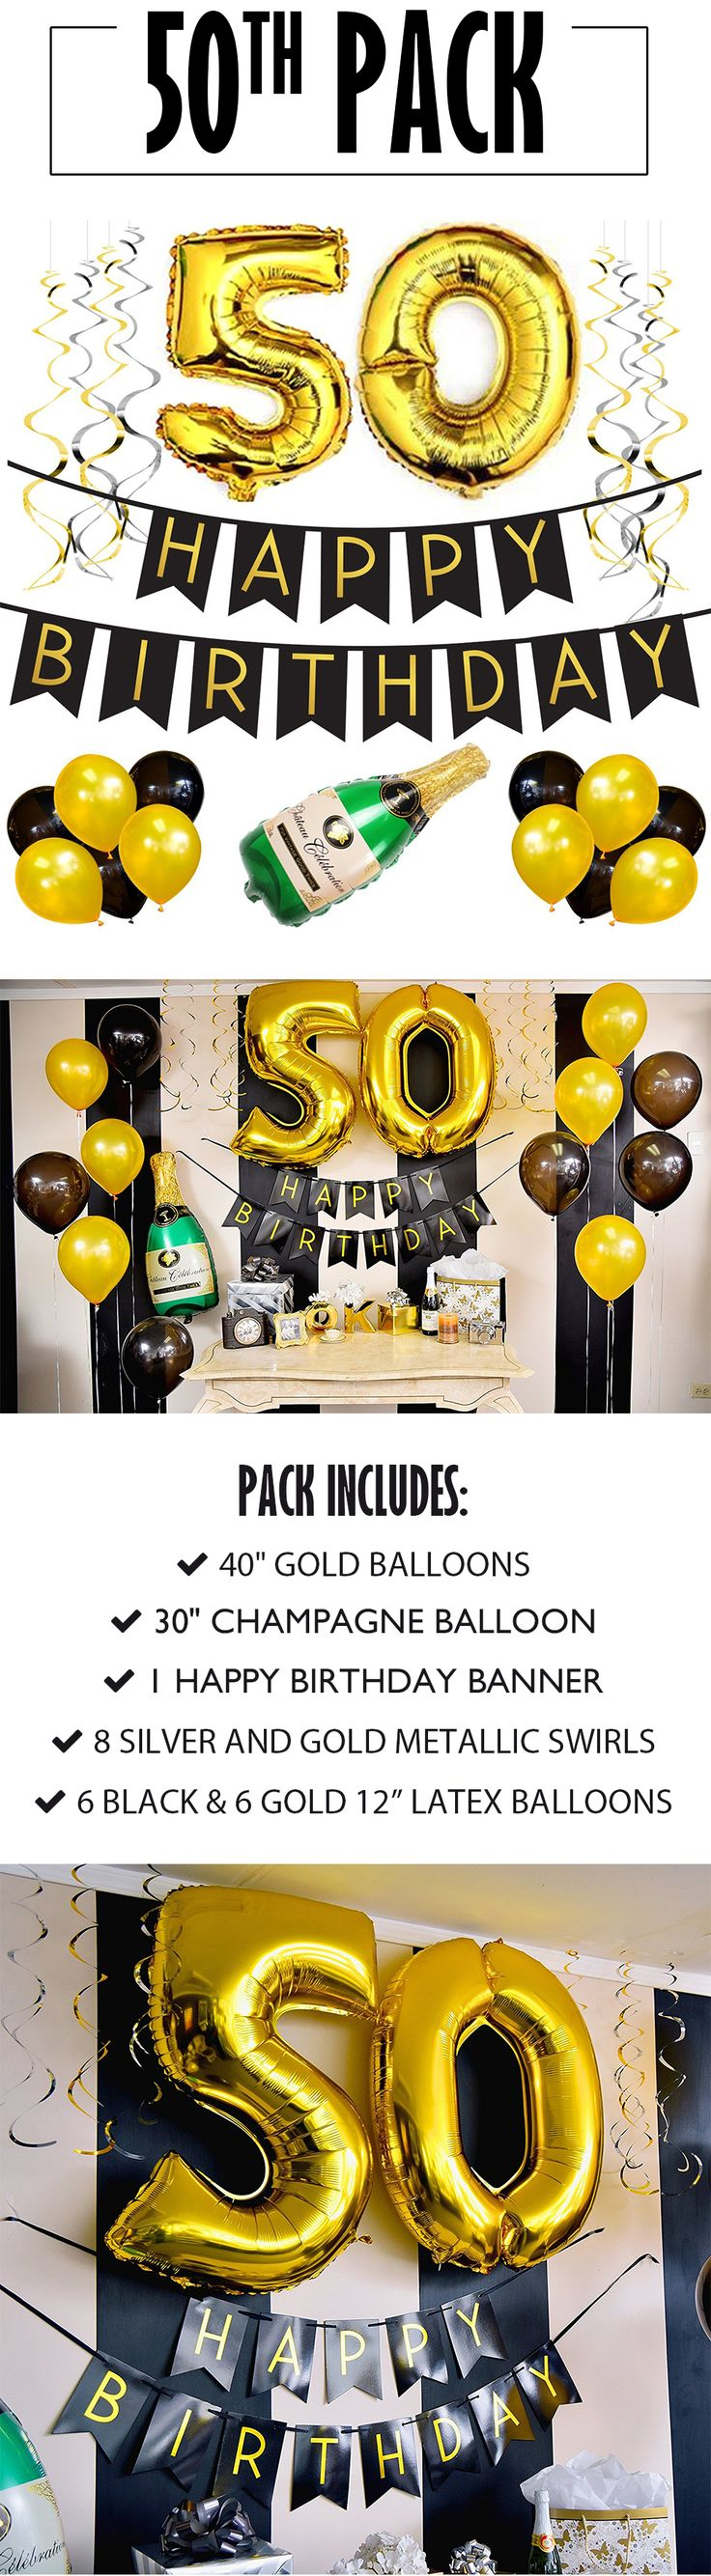 50th Birthday Banner and Balloon Pack!